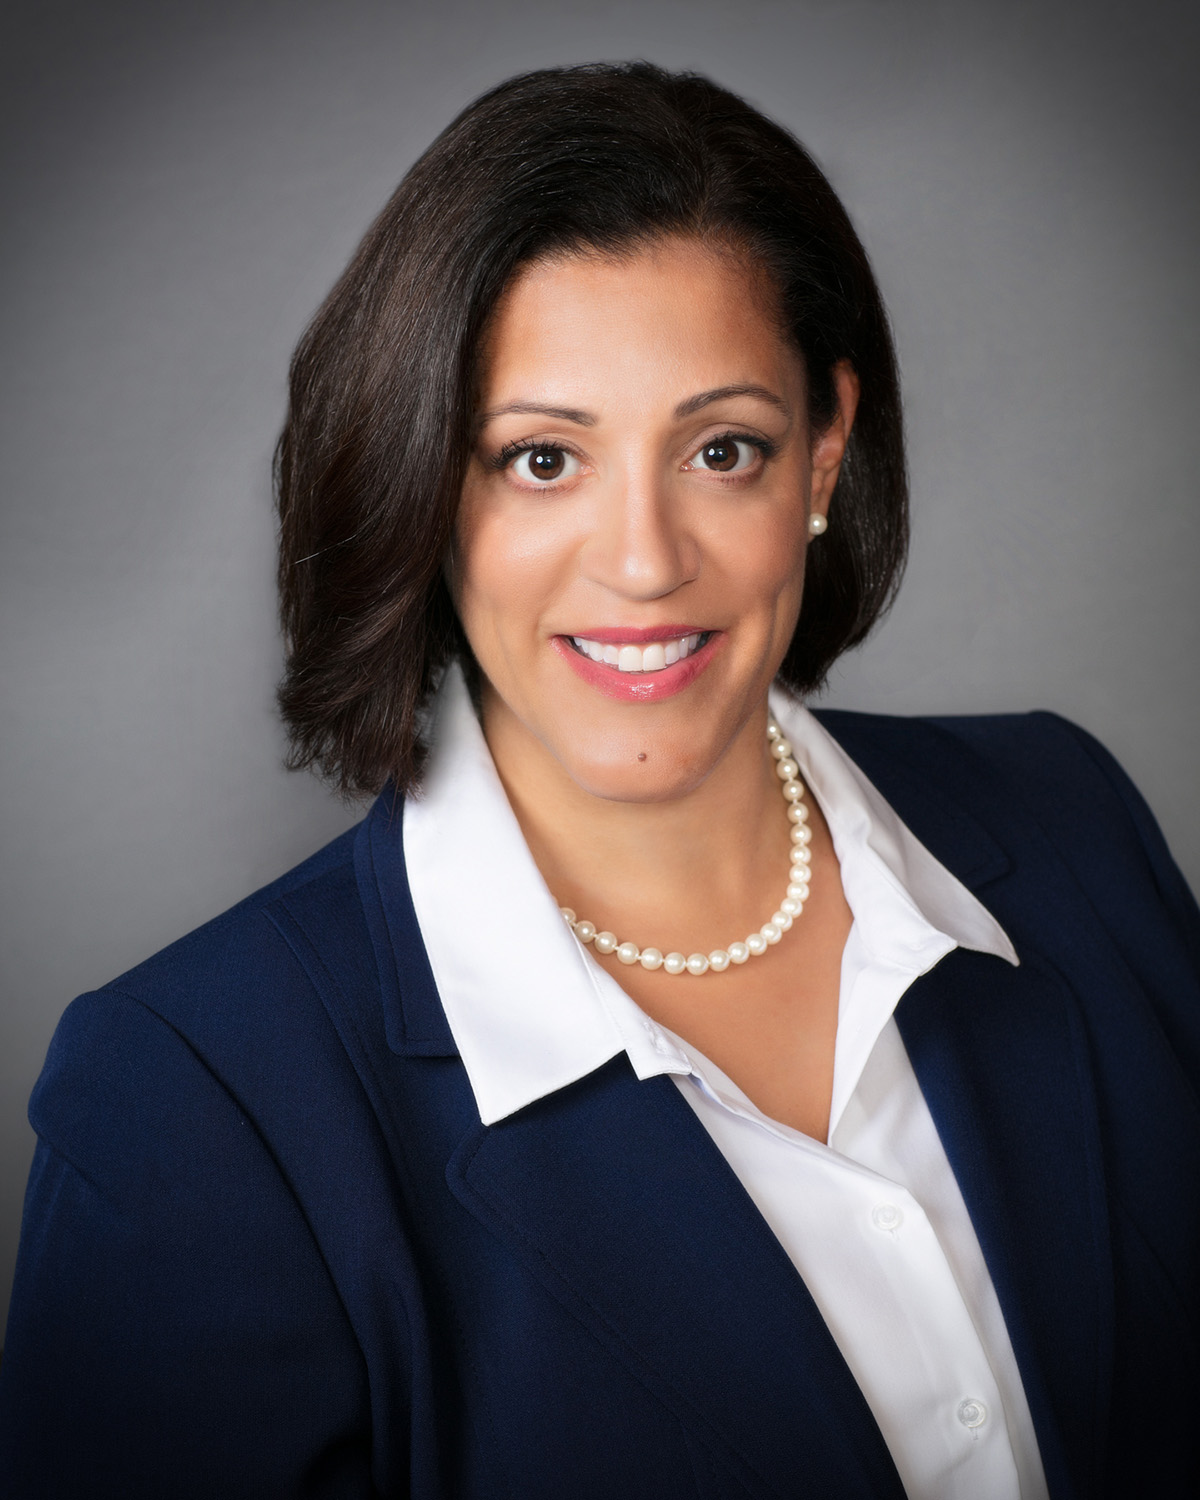 Anita I. Martinez is wearing a dark blue suit with a white collar shirt and a white necklace.